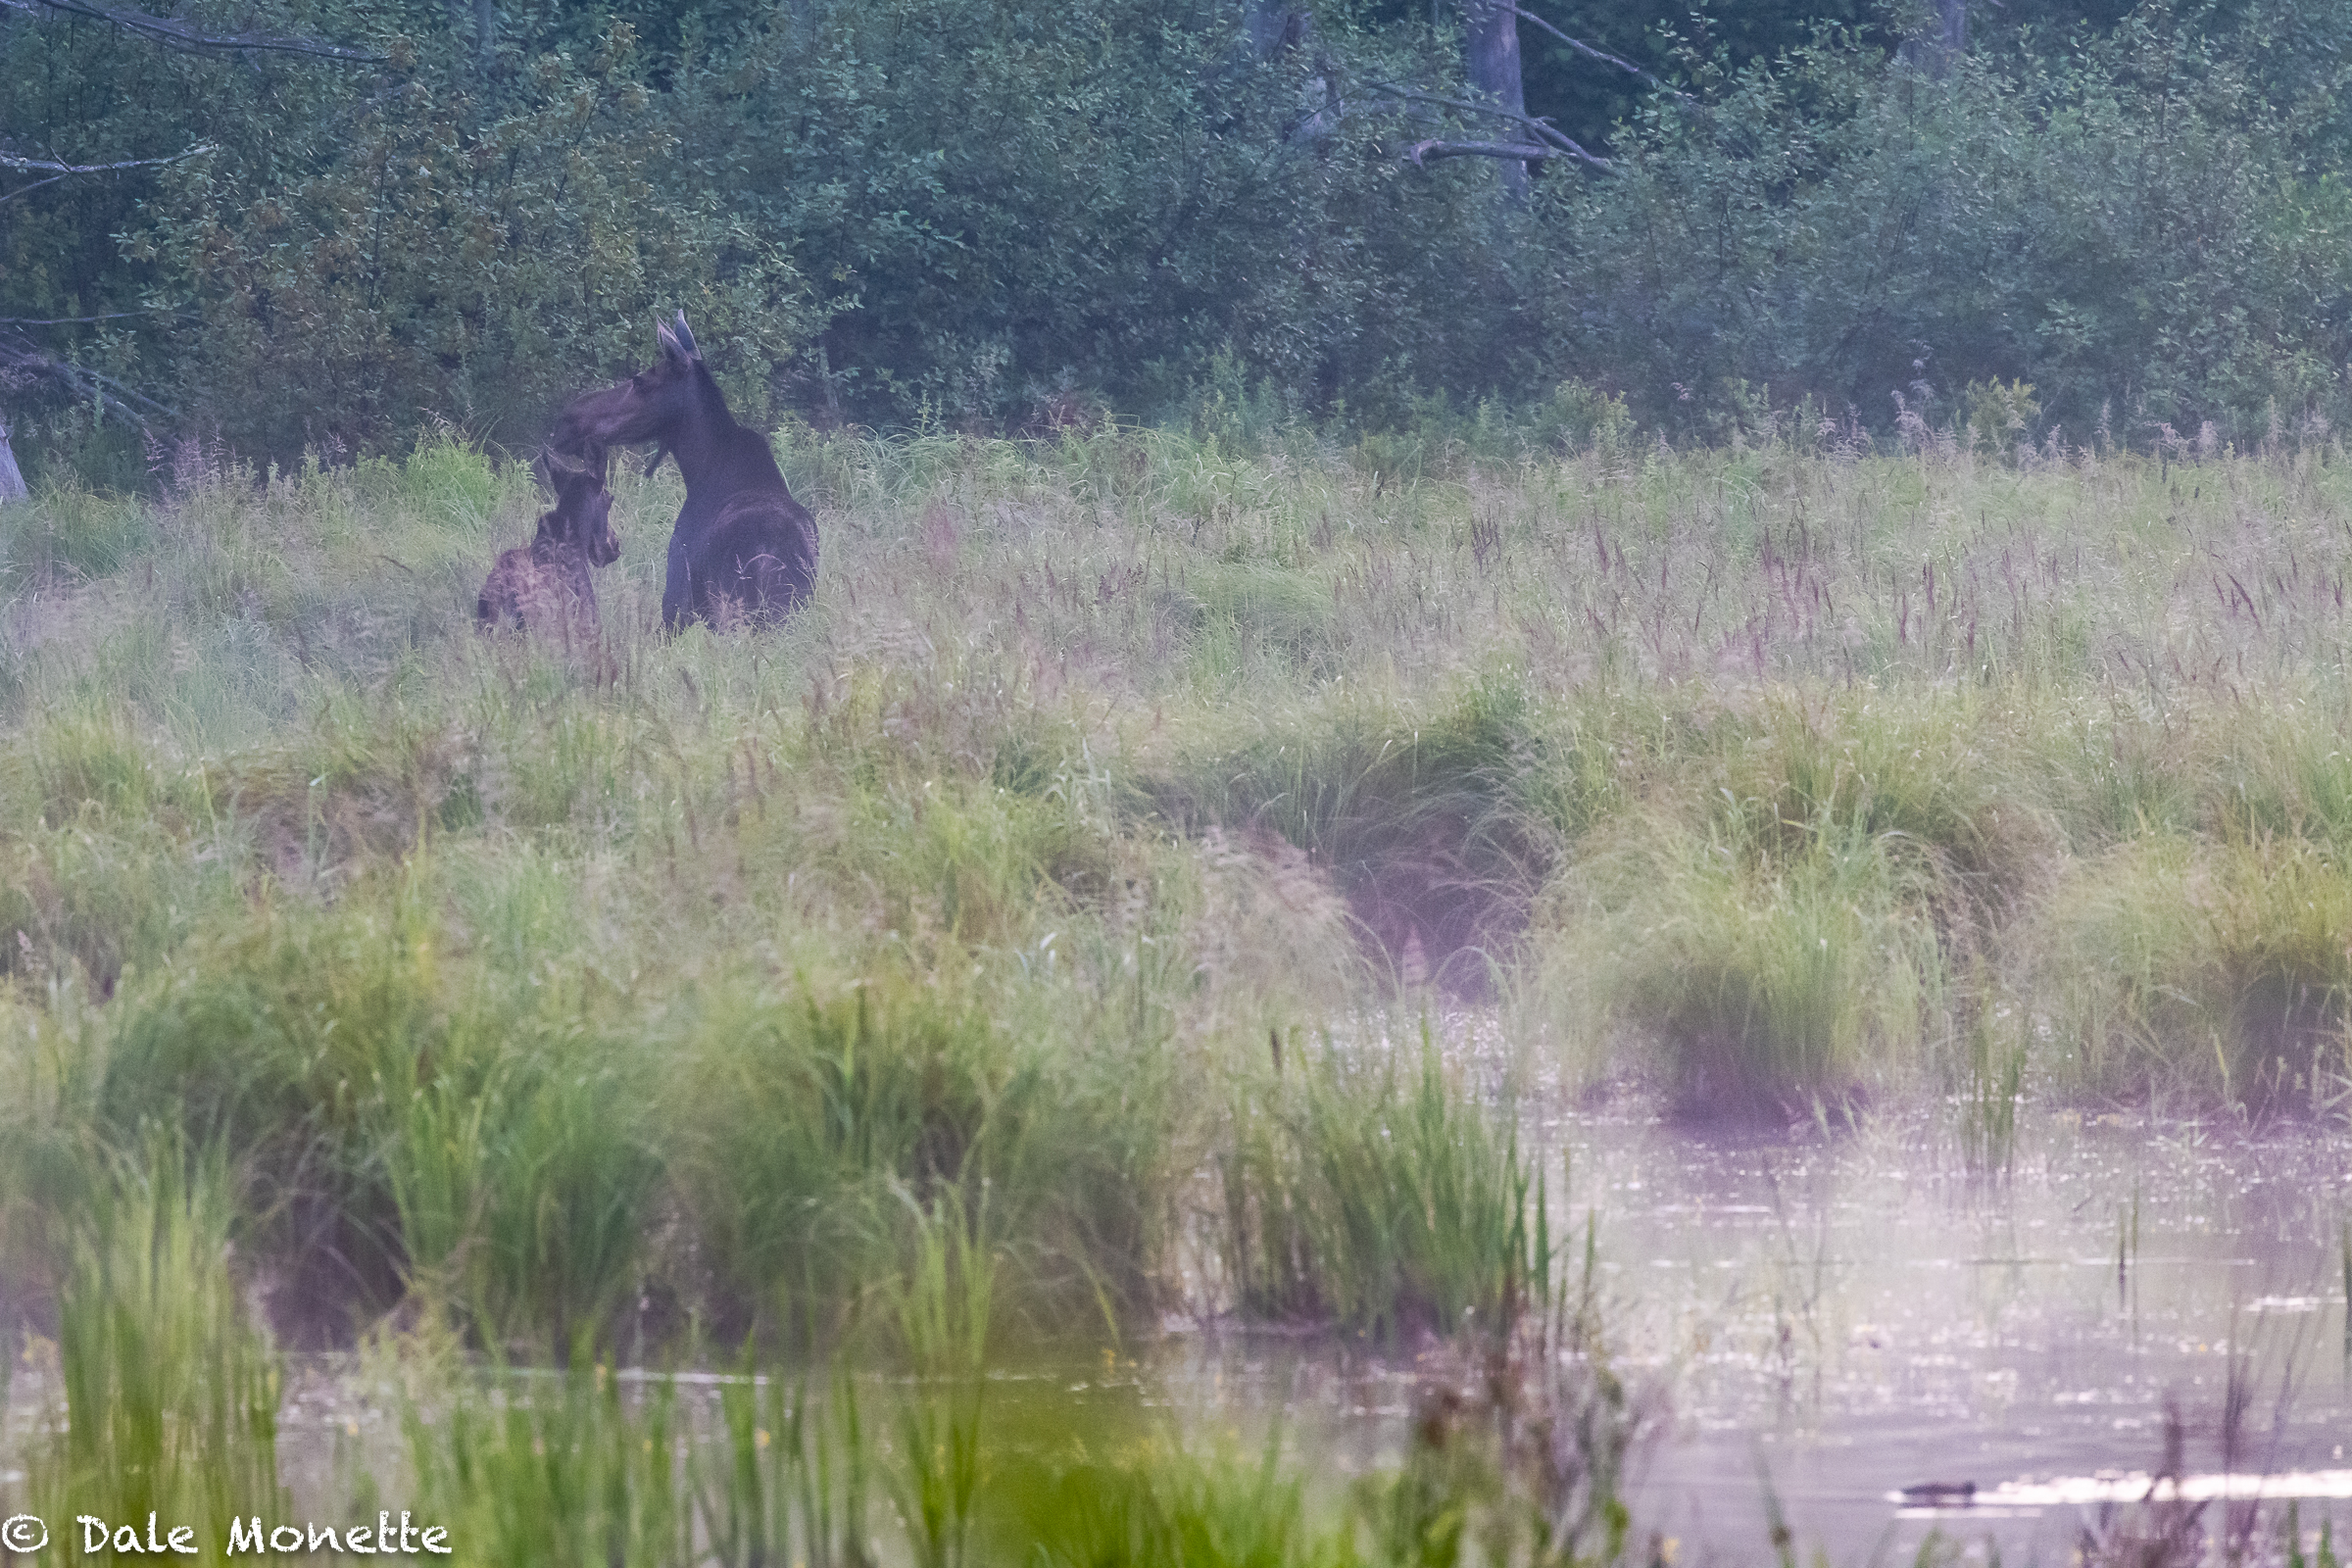 I found these 2 moose in a swamp this morning while it was still quite dark. A mother and it looks like moose from last year still with her. Can you spot the beaver ?